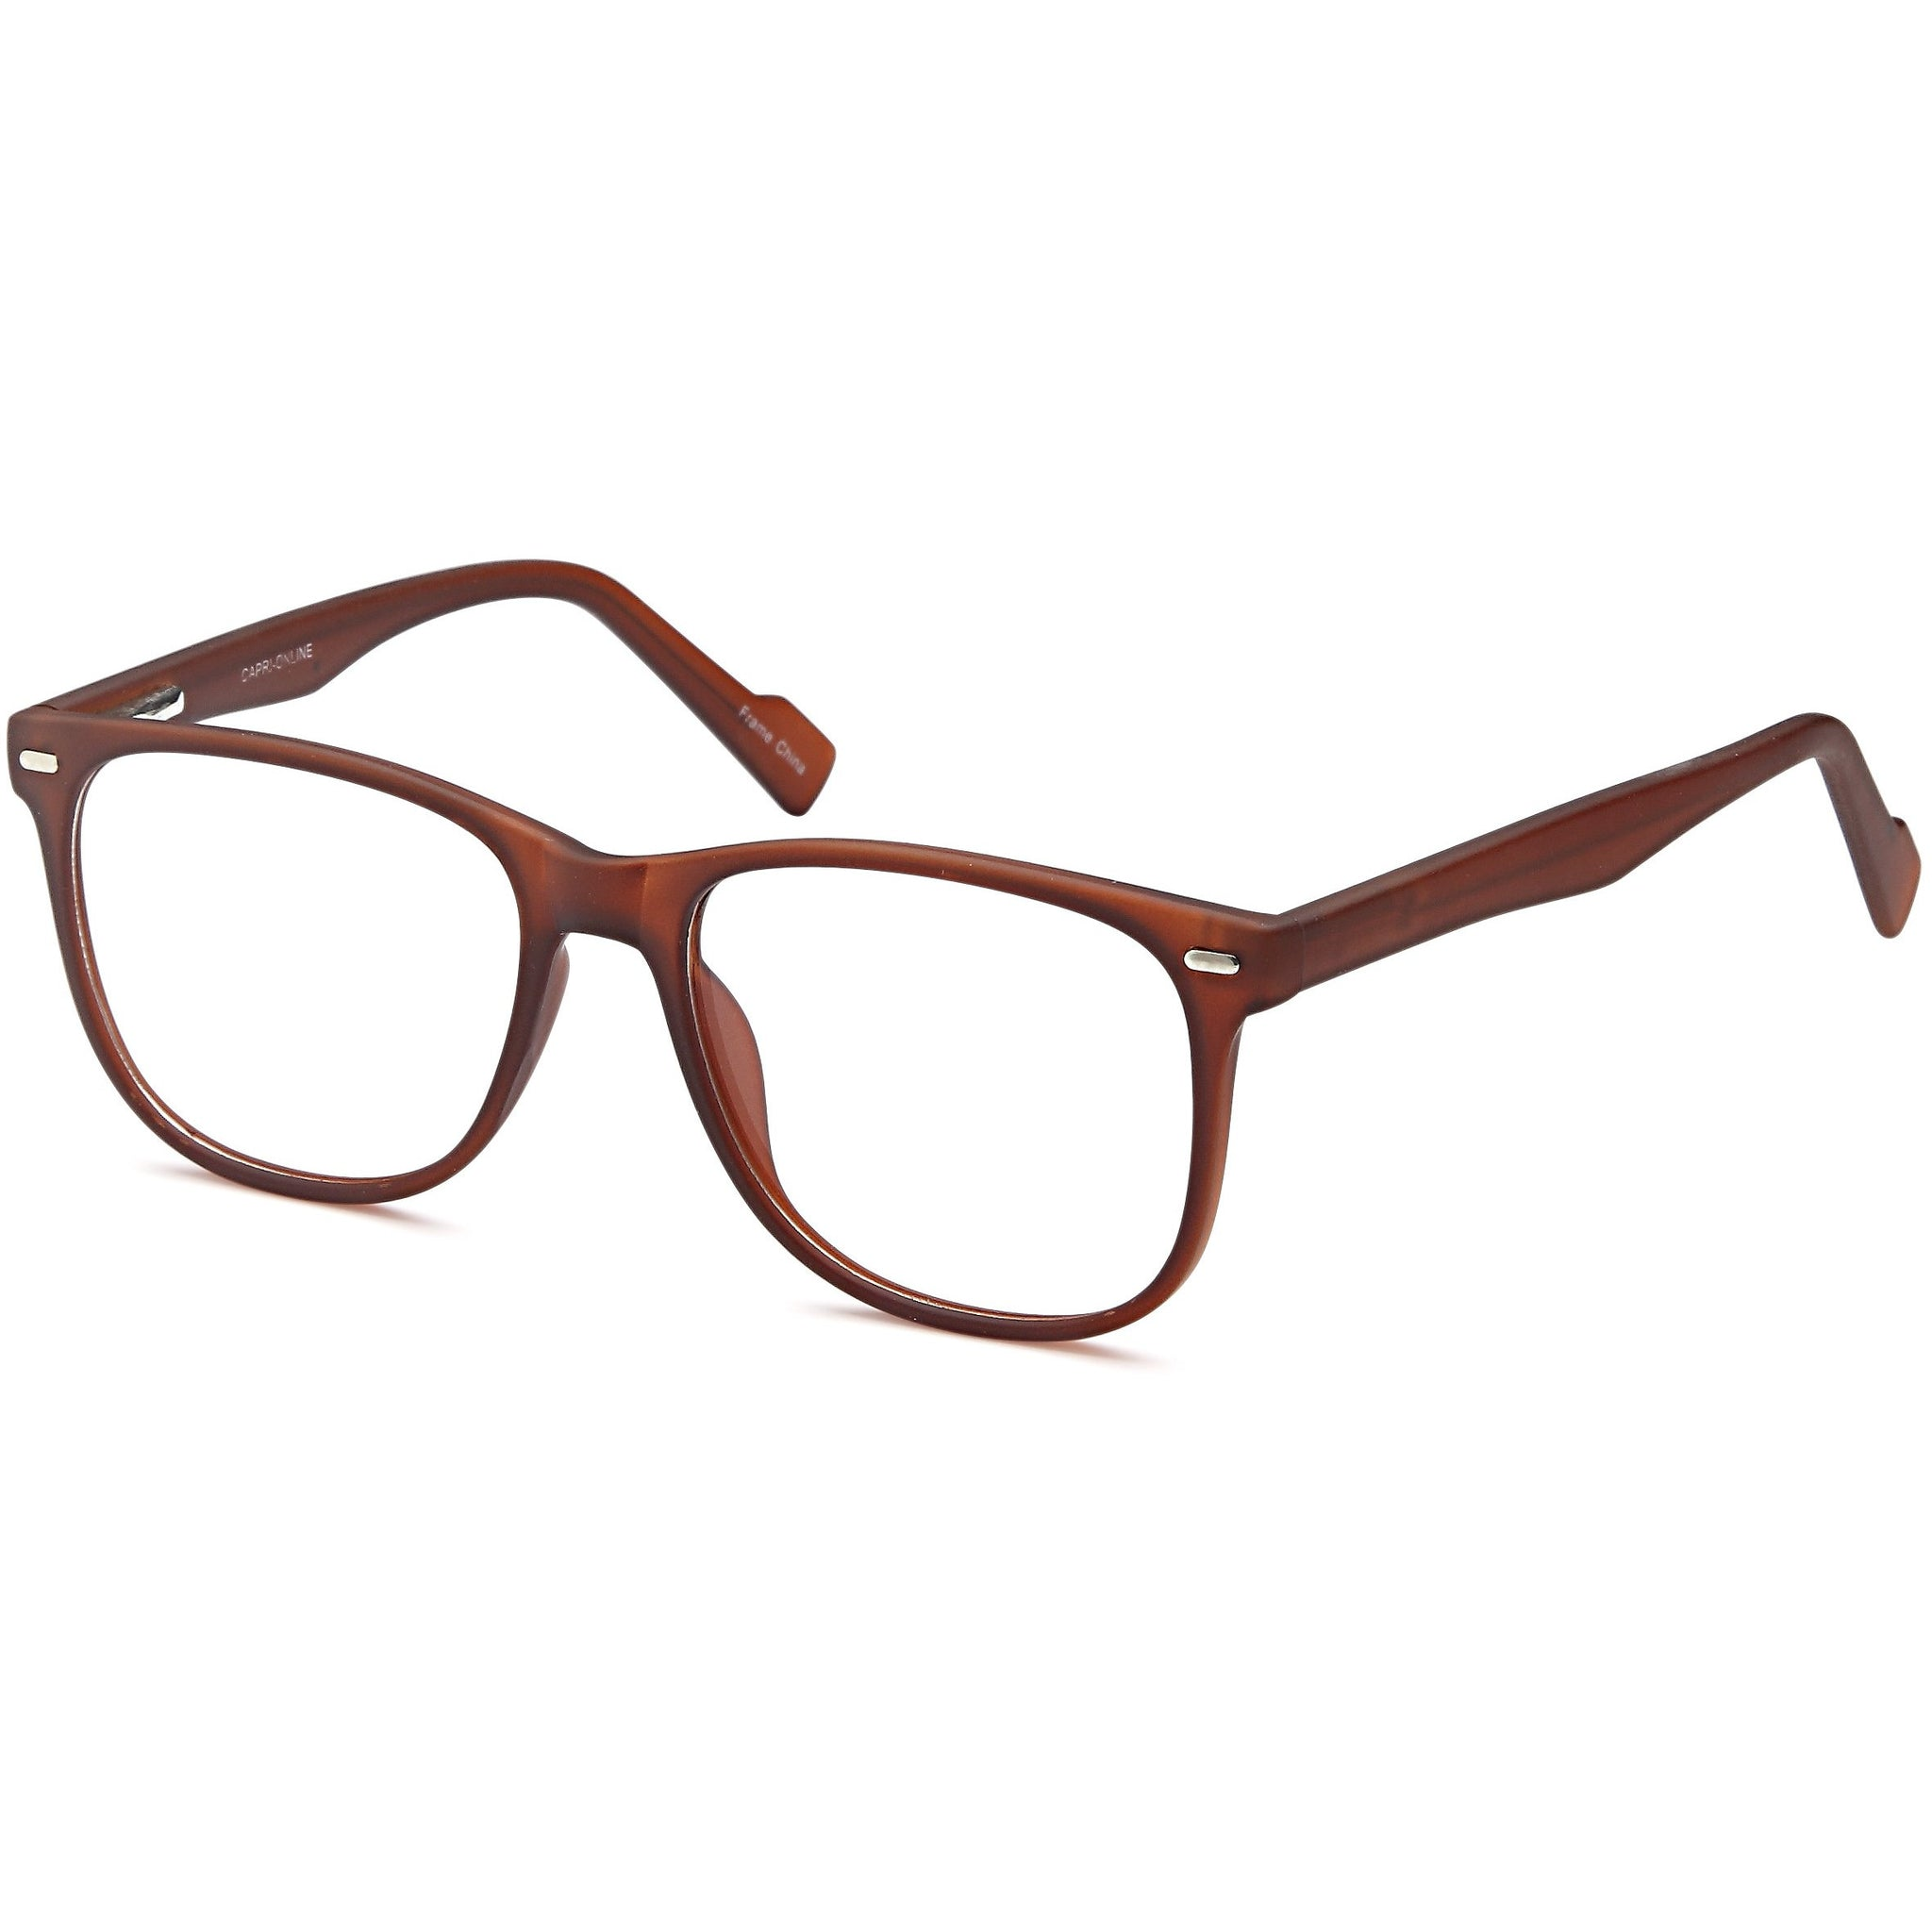 Mayfair by The Mile Square Prescription Eyeglasses Frames